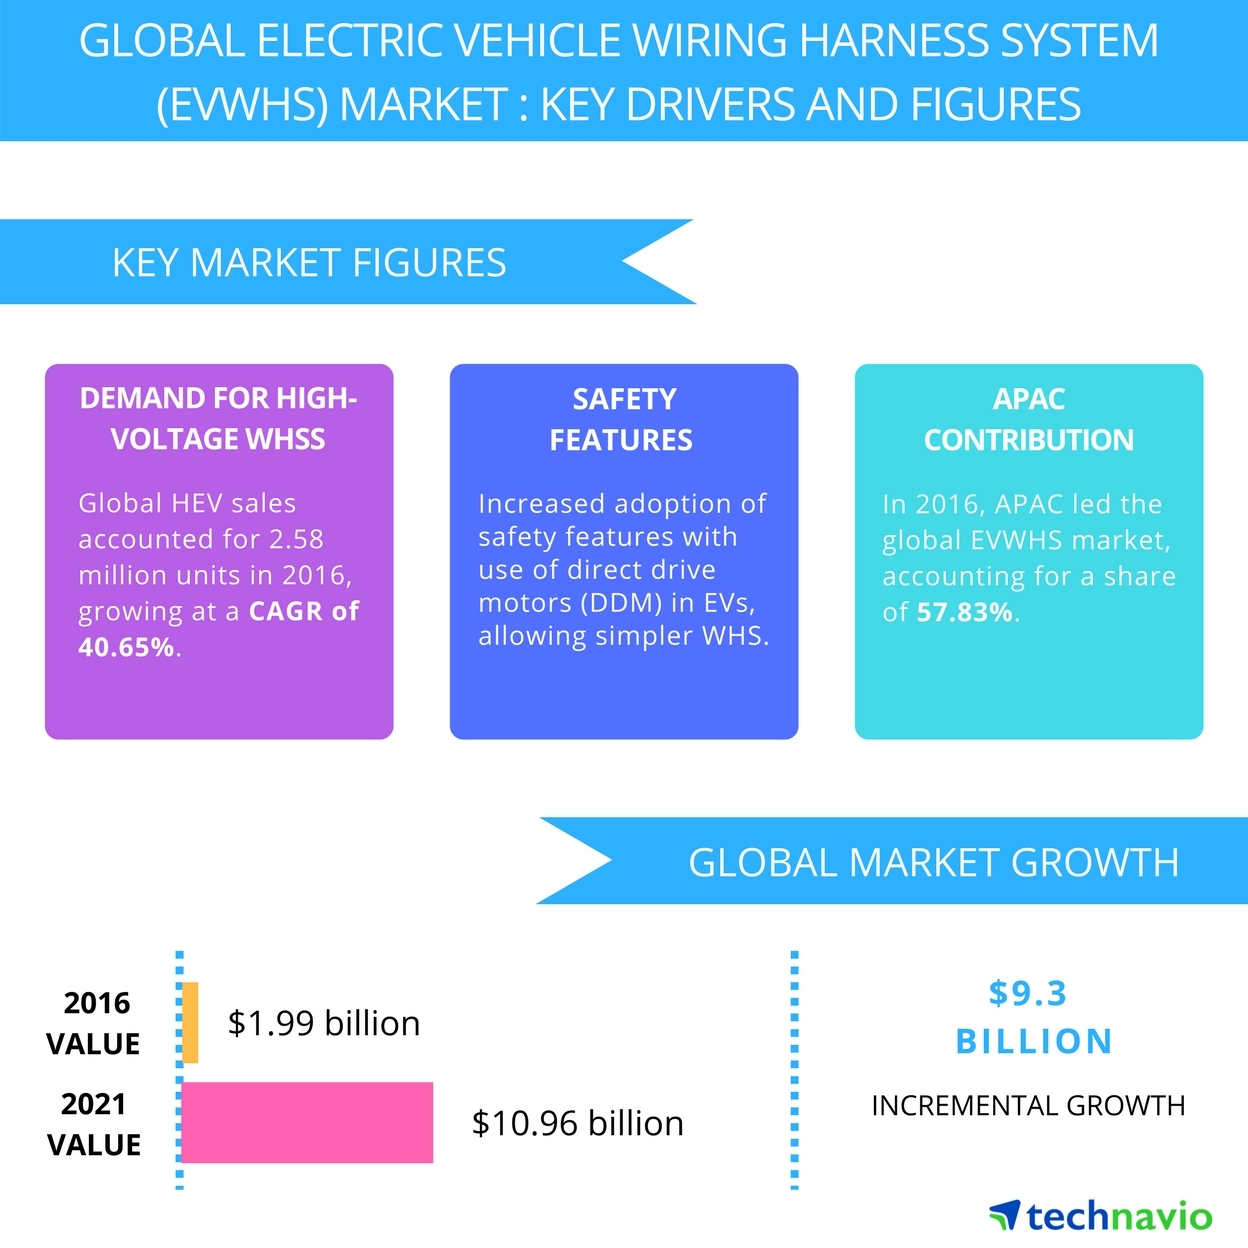 hight resolution of electric vehicle wiring harness system market trends and drivers by technavio business wire